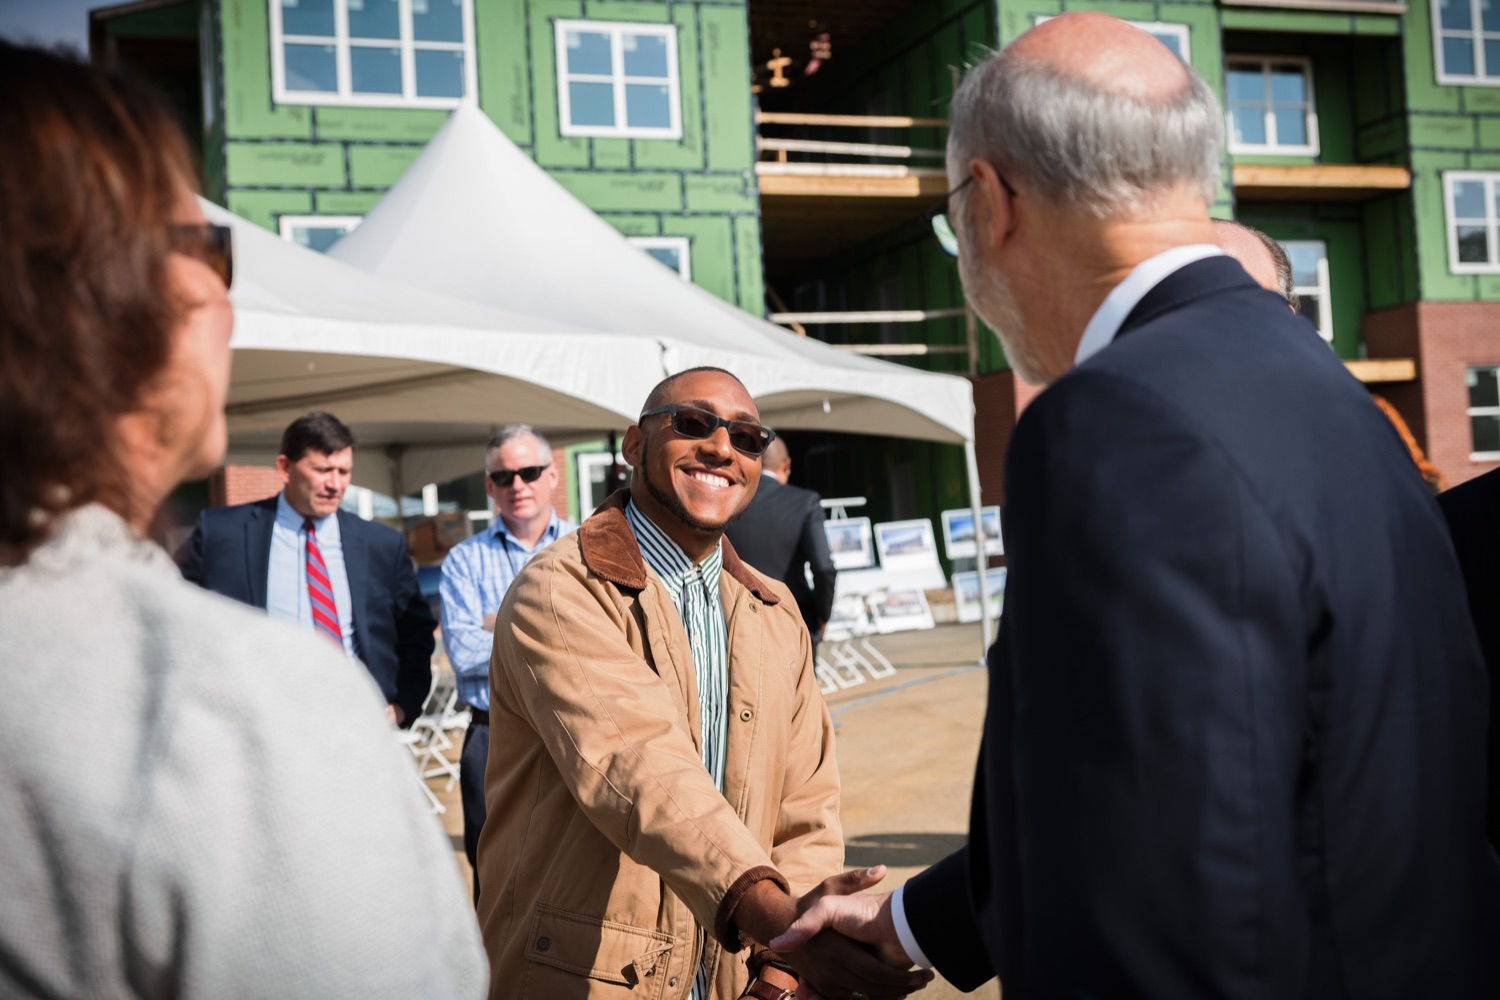 """<a href=""""https://filesource.wostreaming.net/commonwealthofpa/photo/20125_gov_economicDevelopment_dz_004.jpg"""" target=""""_blank"""">⇣Download Photo<br></a>Governor Tom Wolf touring the site of the Mill at Easton. Governor Tom Wolf today visited the City of Easton to highlight millions of dollars in state investments in several economic development projects that are revitalizing formerly vacant and blighted properties.  Easton, PA   October 8, 2021."""